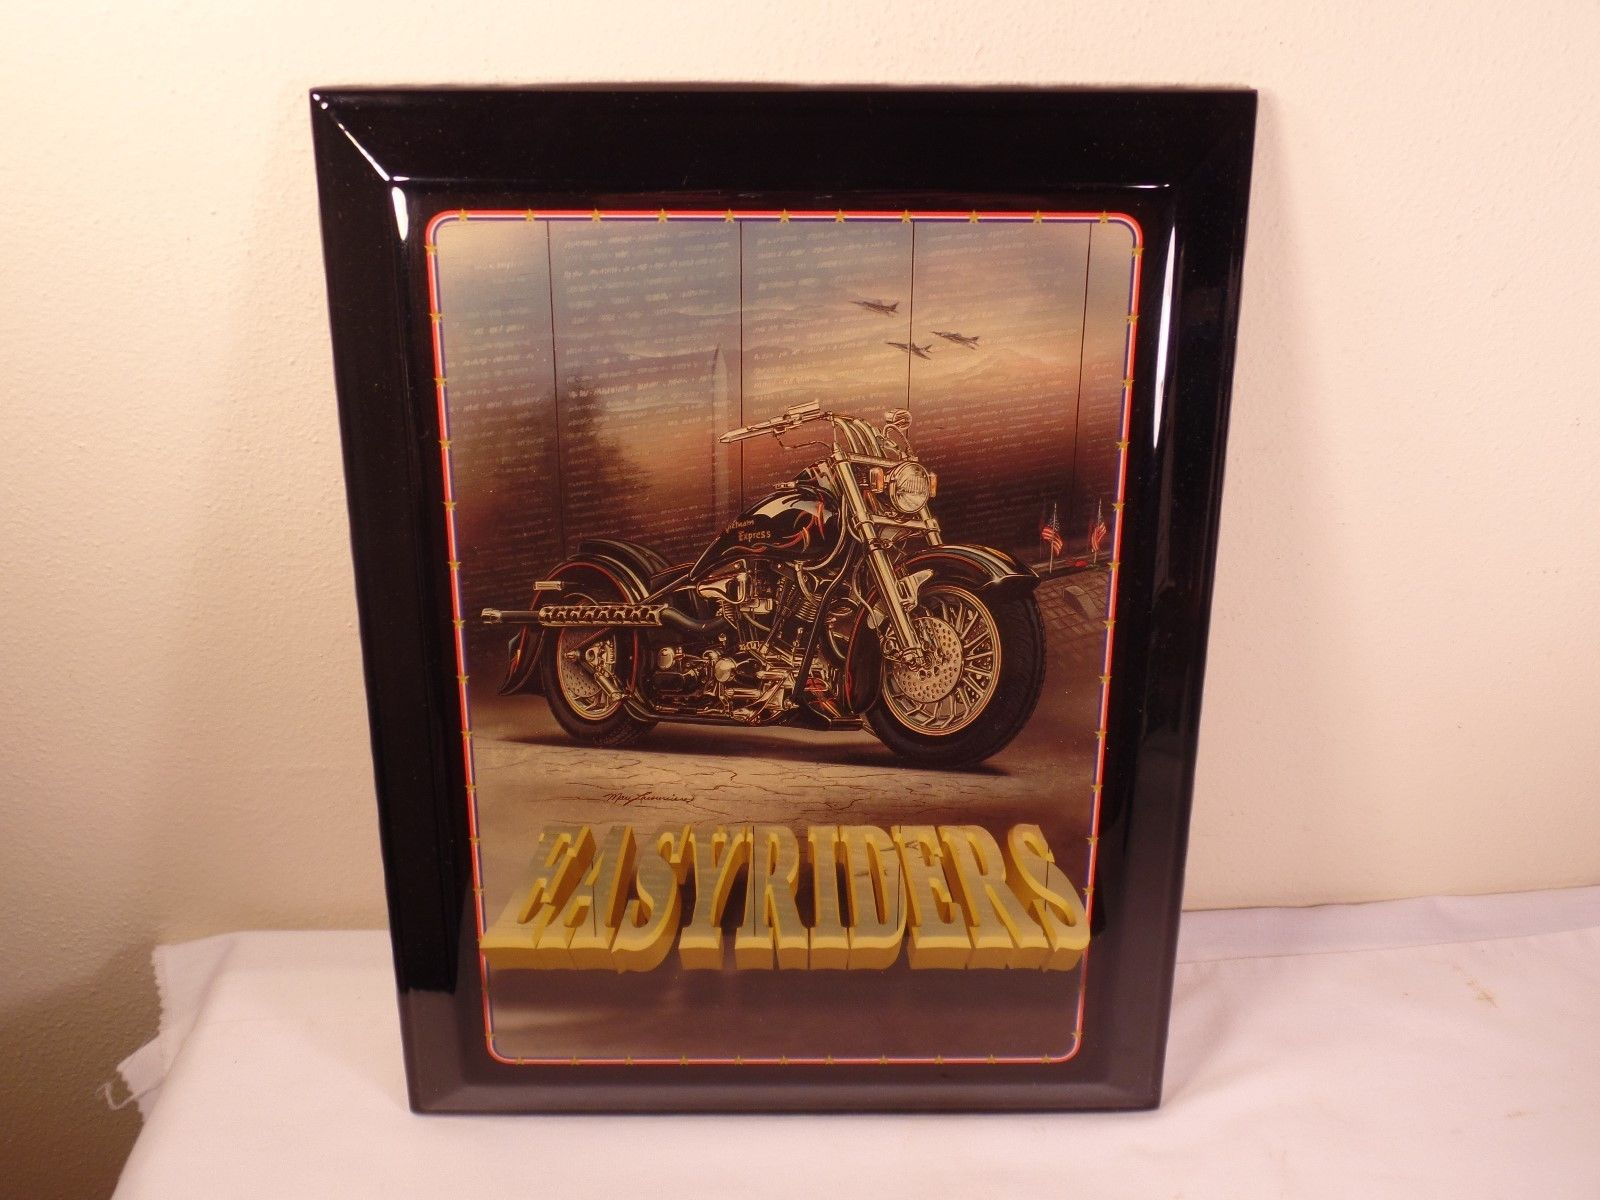 Motorcycle Home Decor : Easy riders harley davidson motorcycle home decor wood